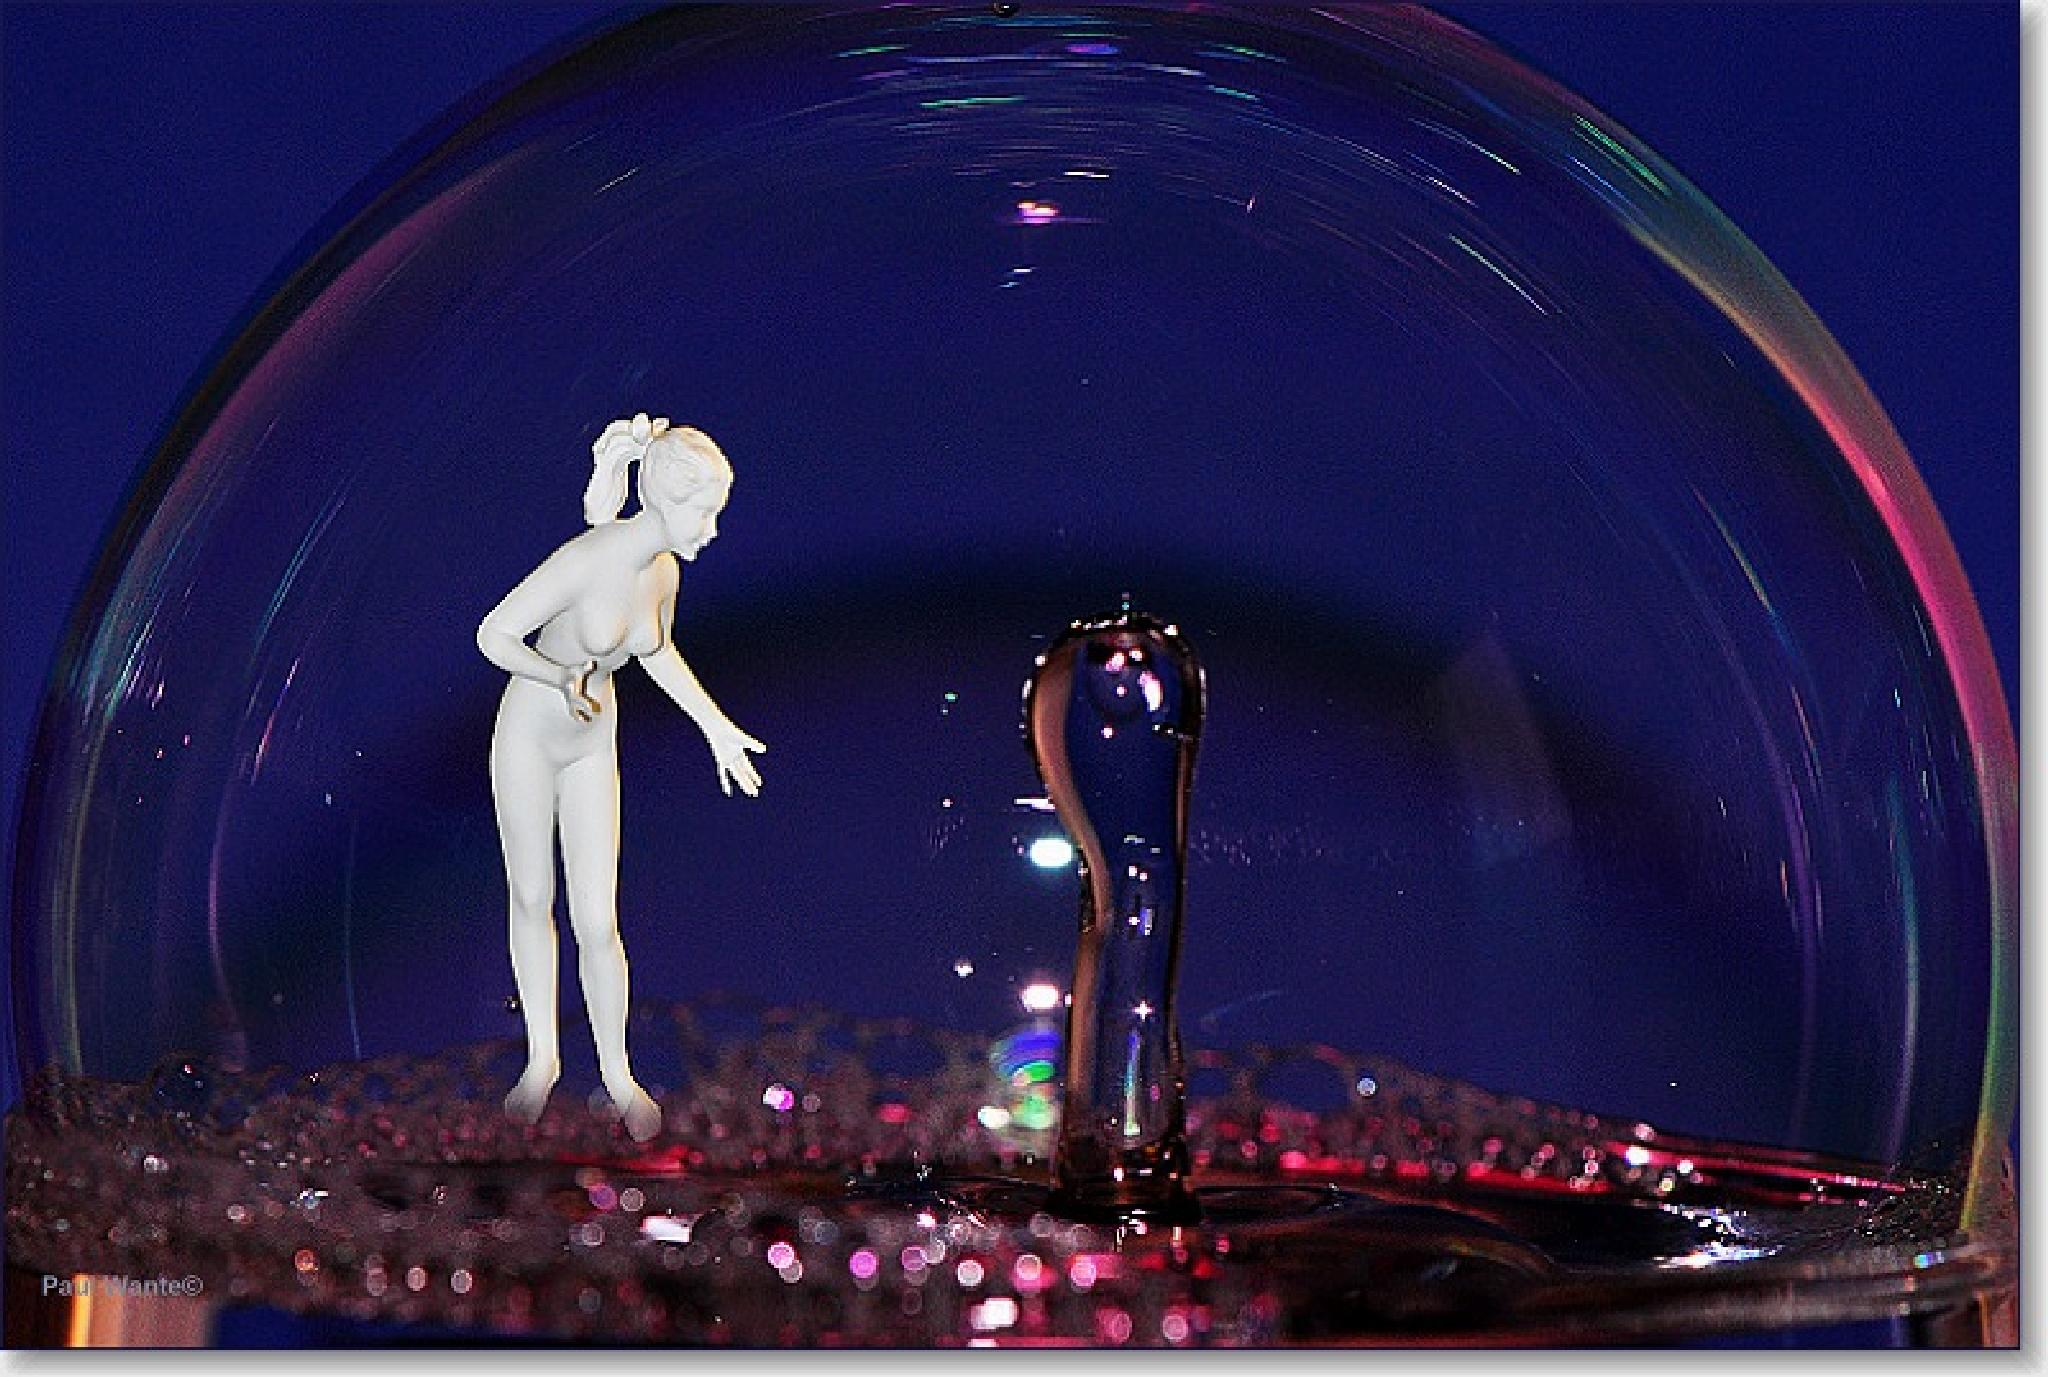 the girl and the waterdrop by paul wante